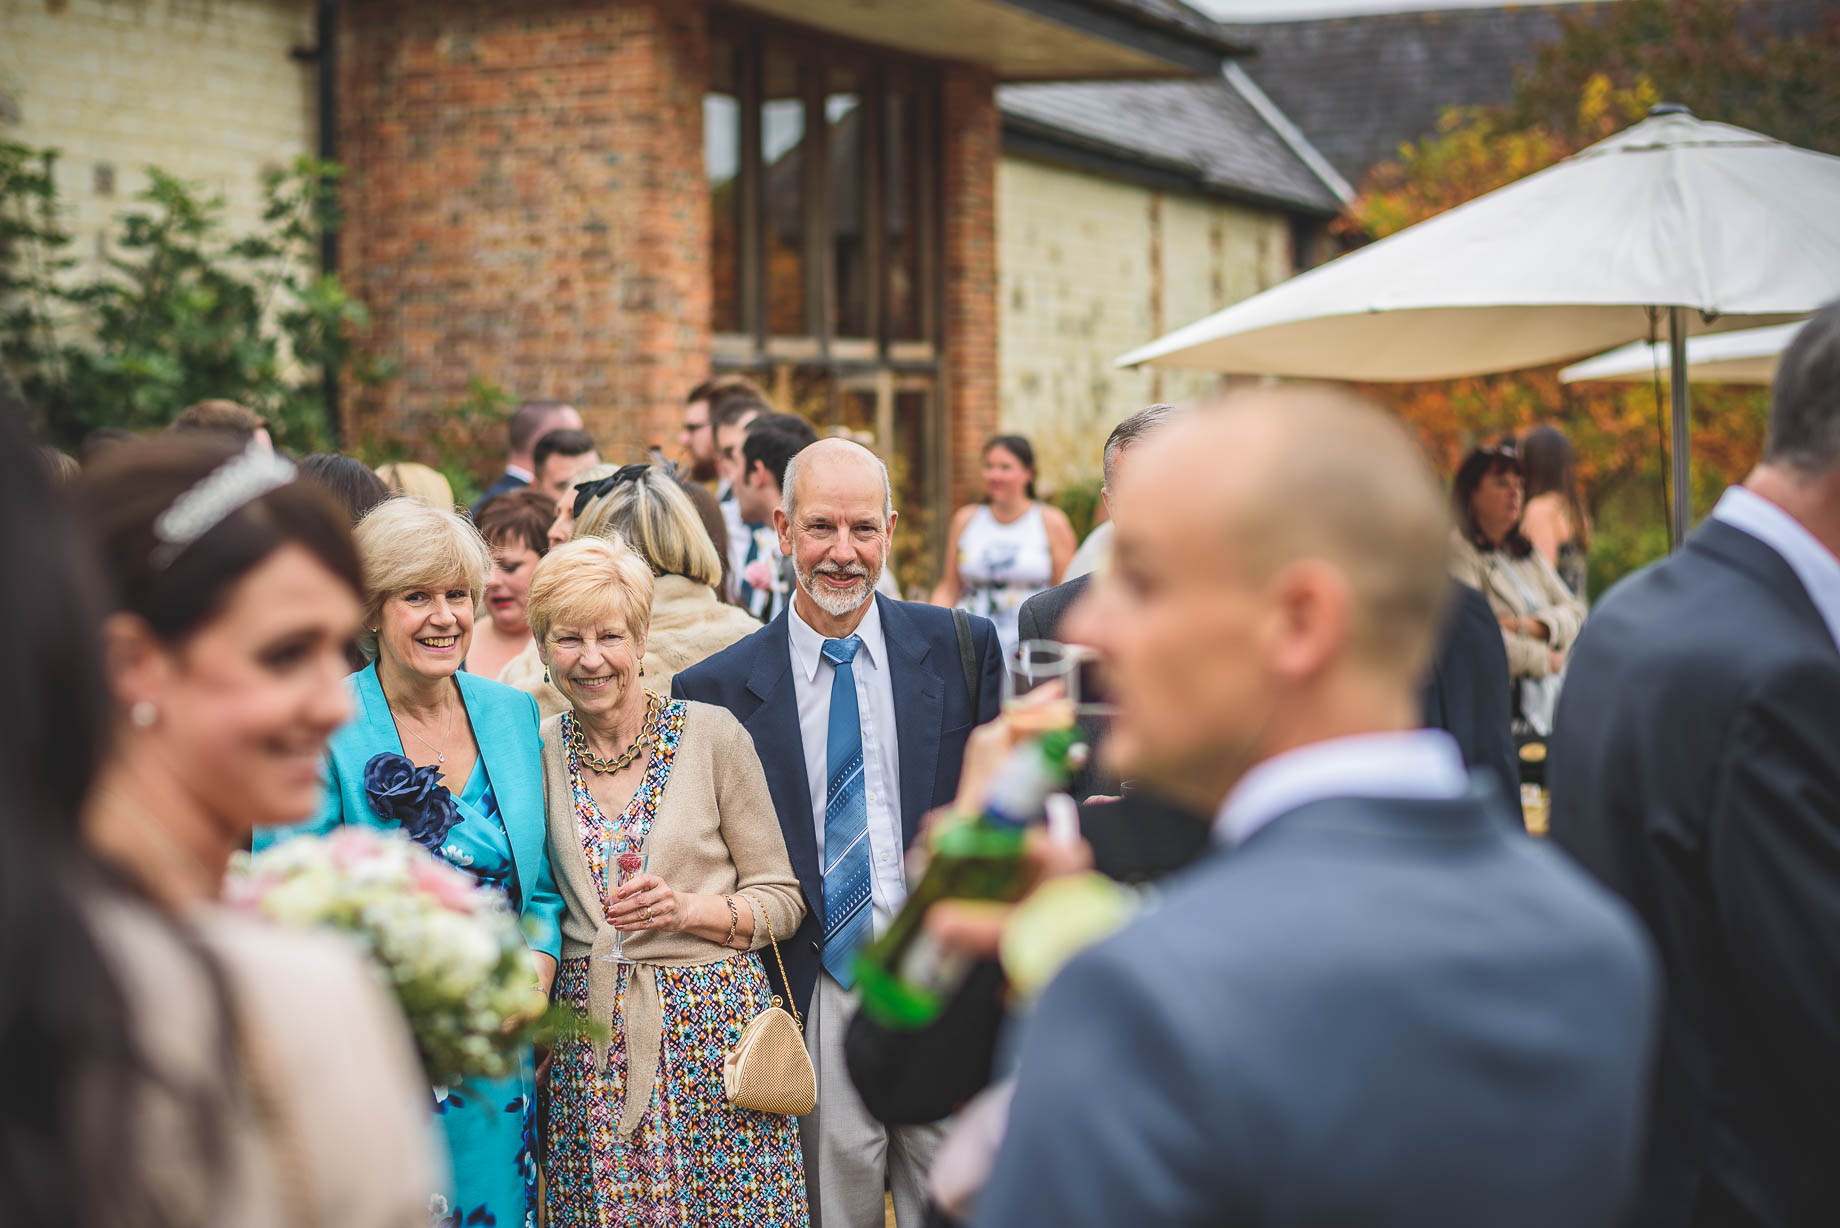 Bury Court Barn wedding photography - Guy Collier Photography - Karen and John (83 of 166)